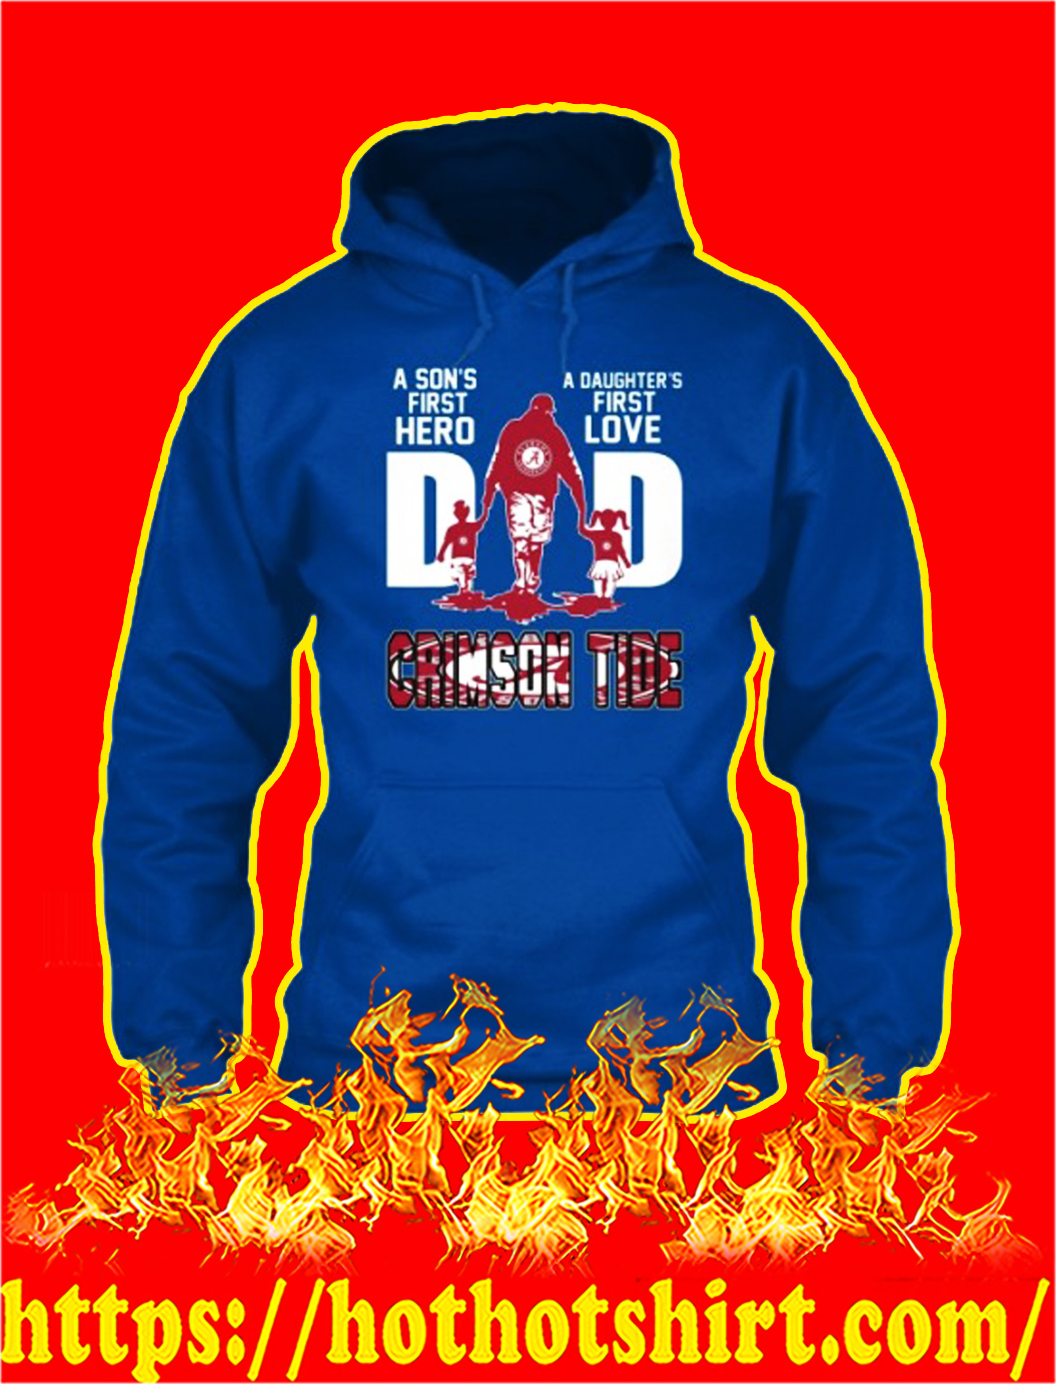 Crimson tide dad a son's first hero a daughter's first love hoodie